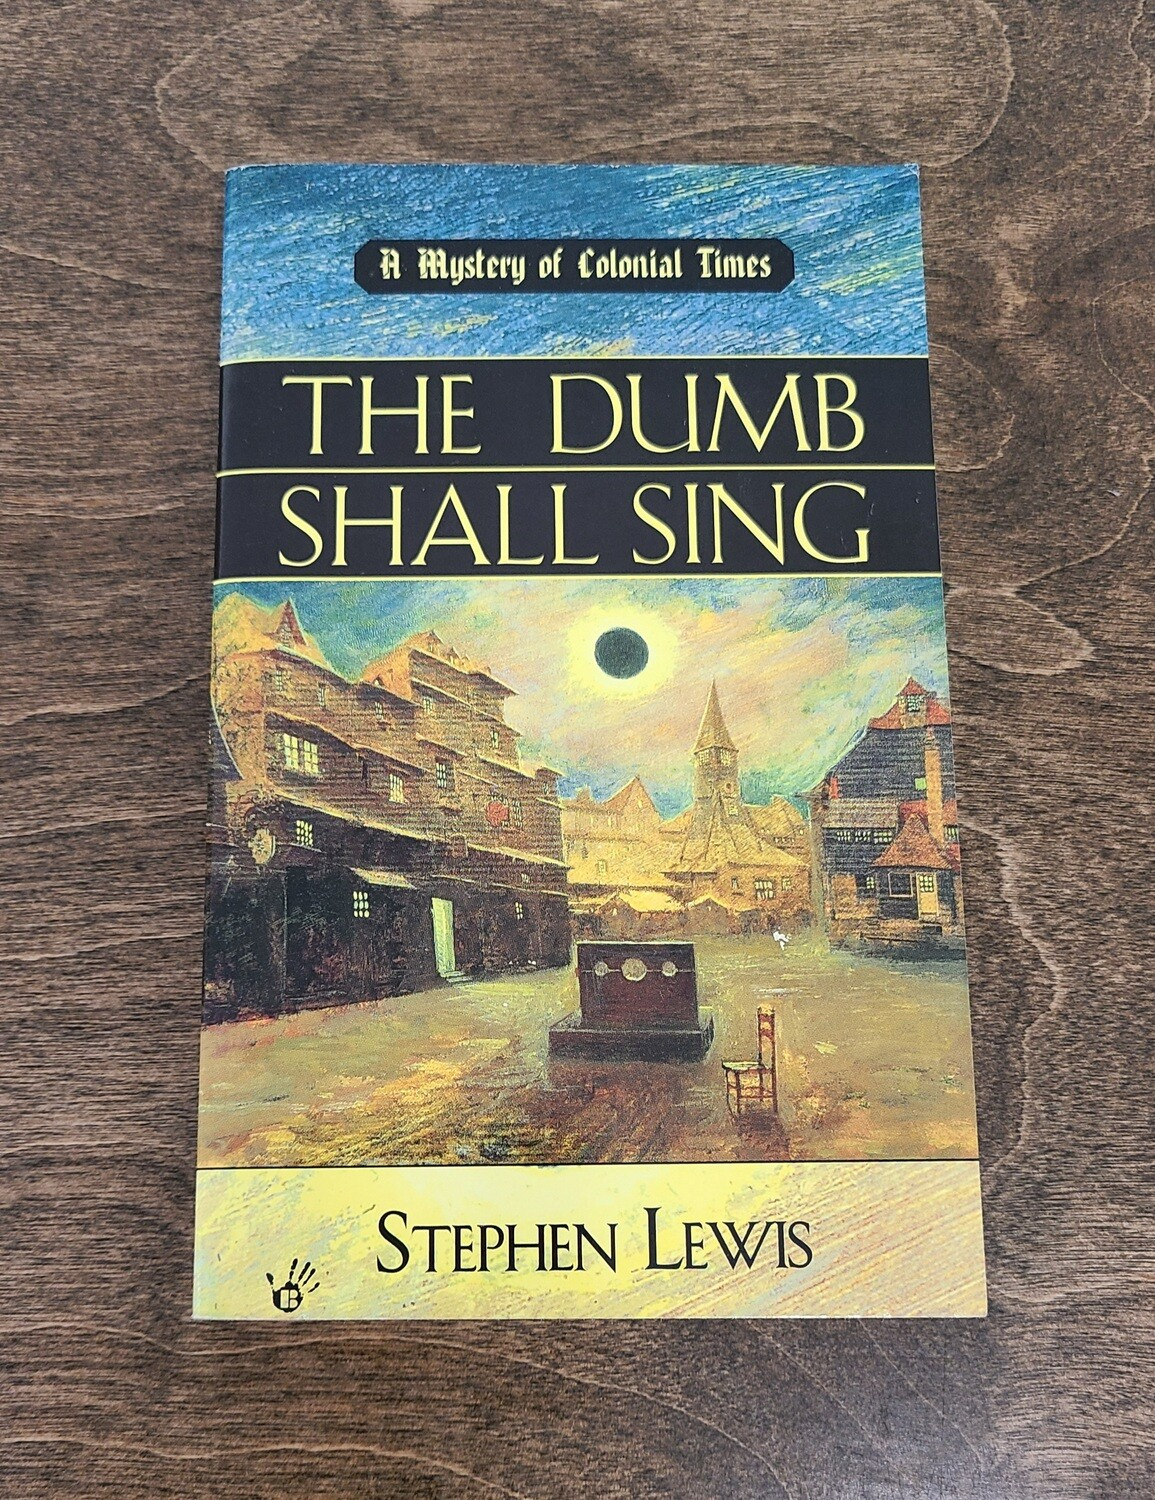 The Dumb Shall Sing by Stephen Lewis